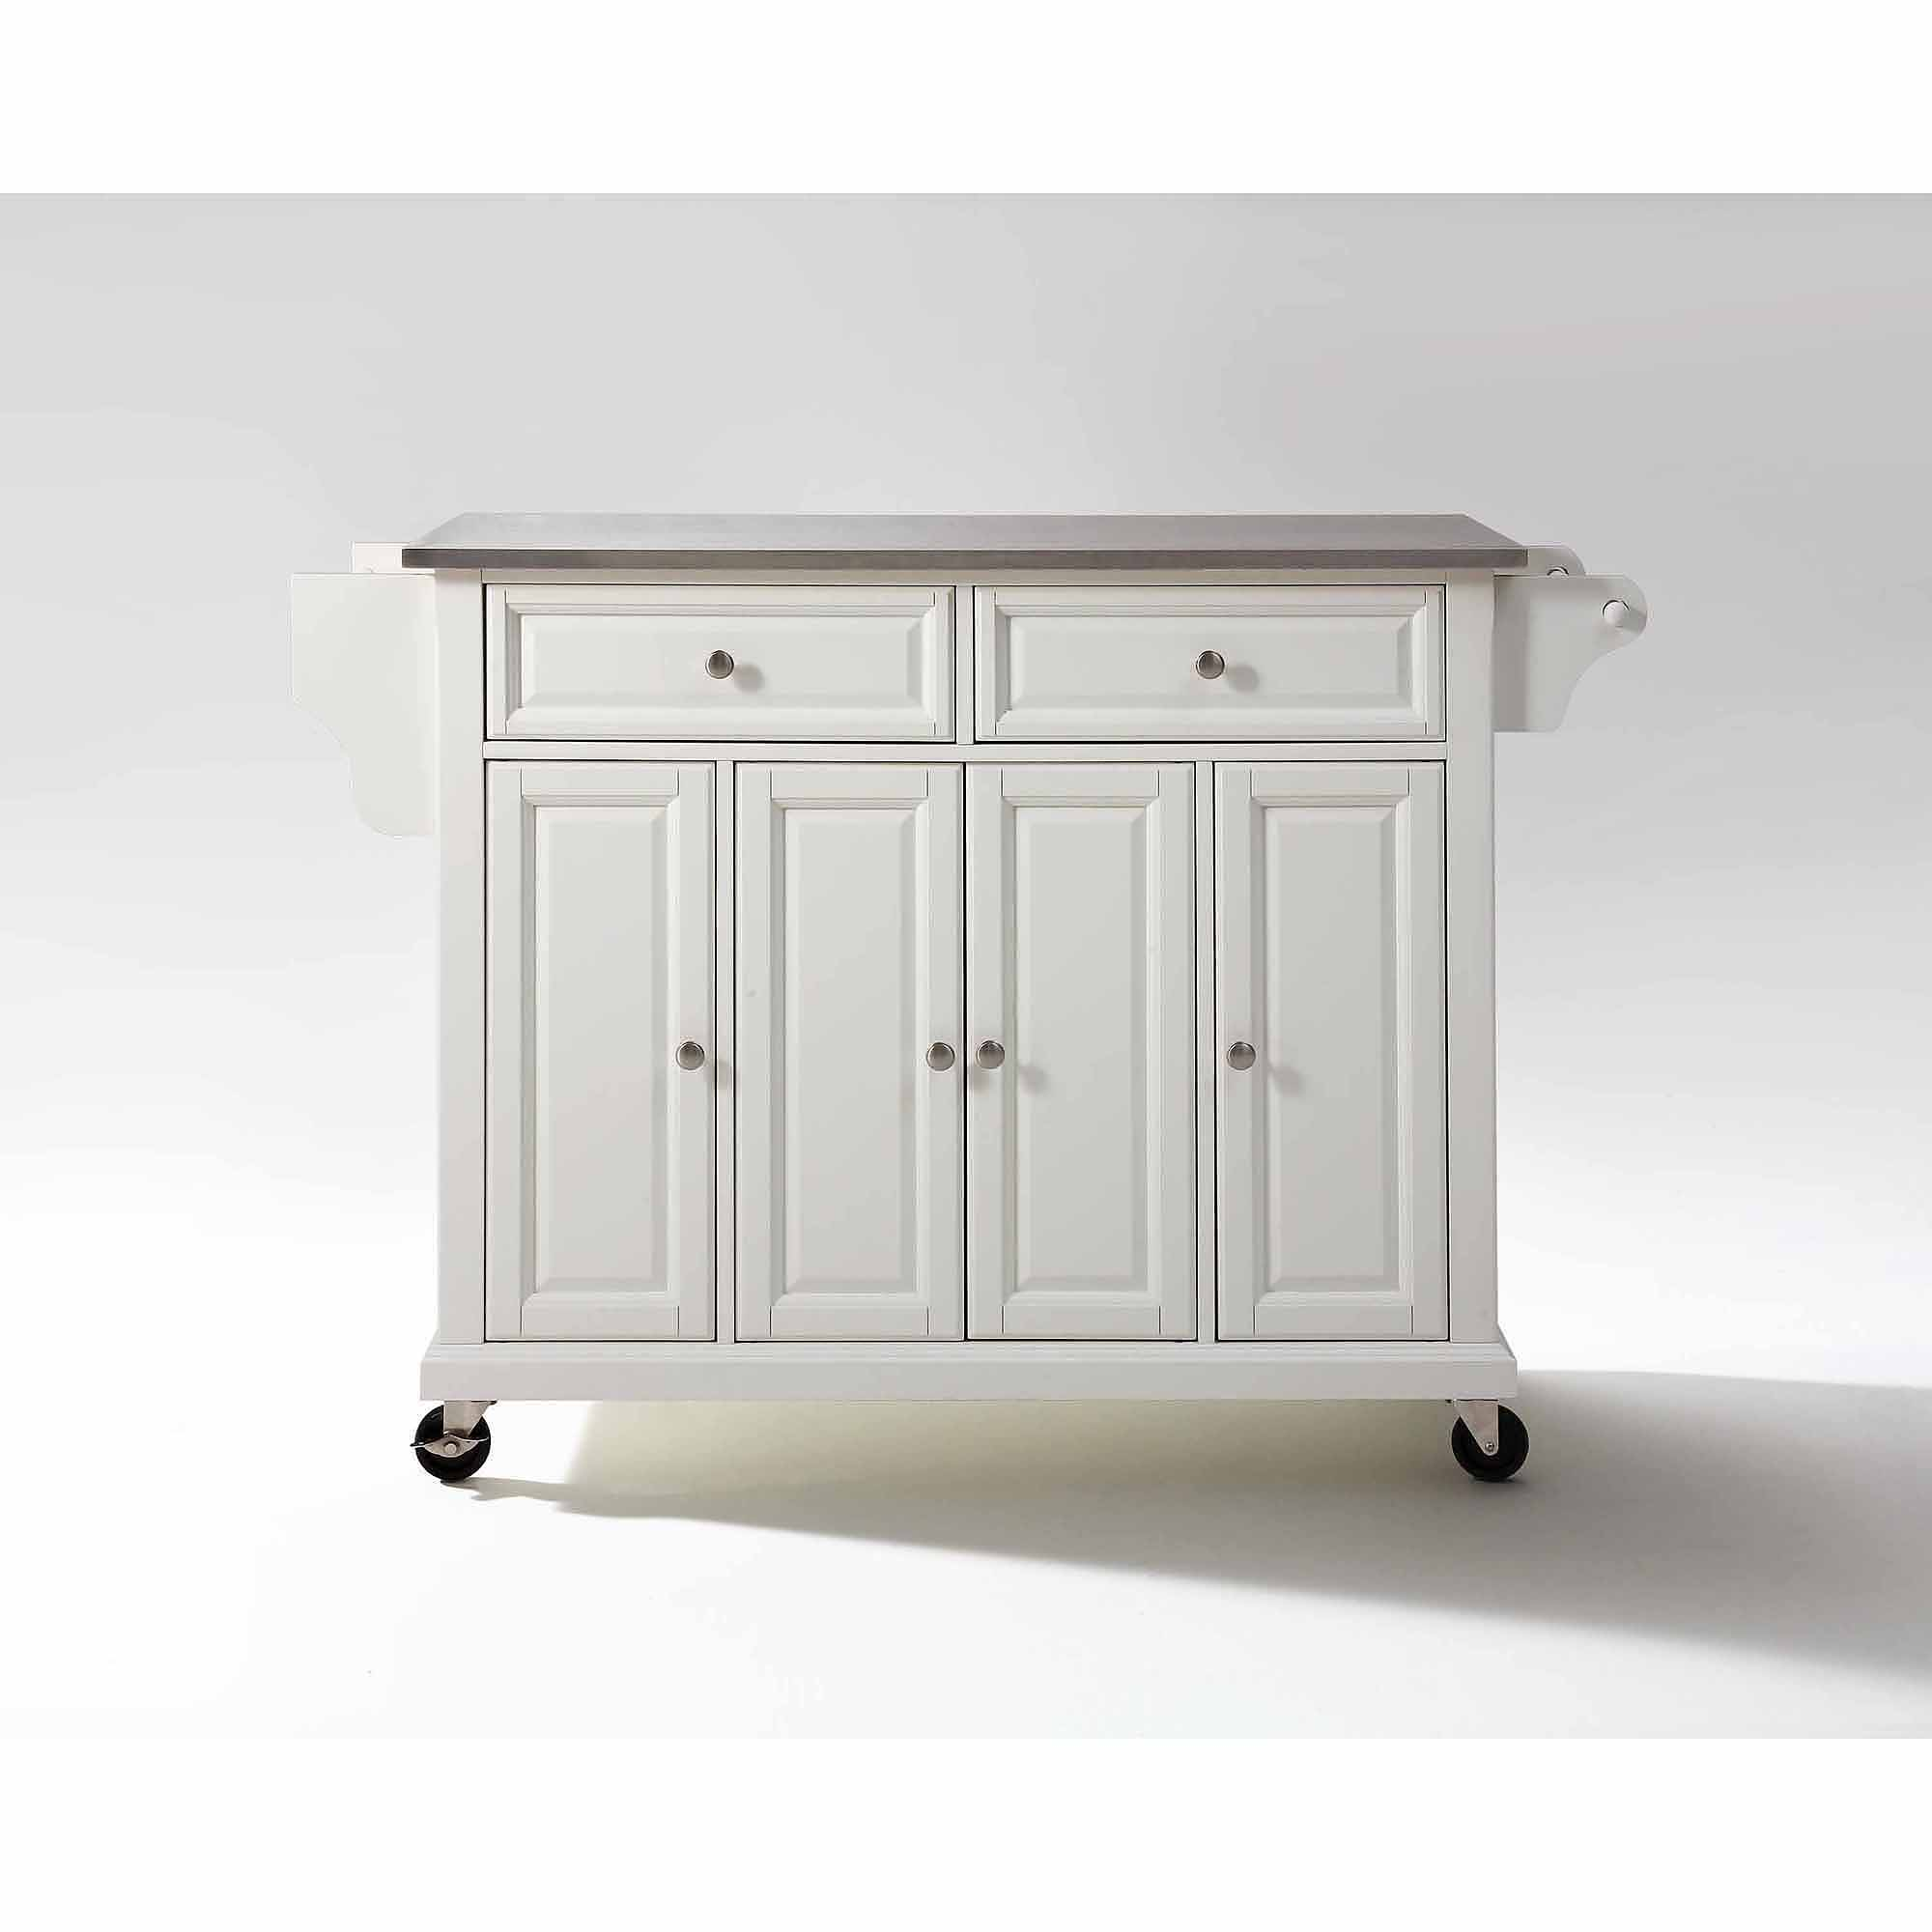 Genial Crosley Furniture Stainless Steel Top Kitchen Cart   Walmart.com